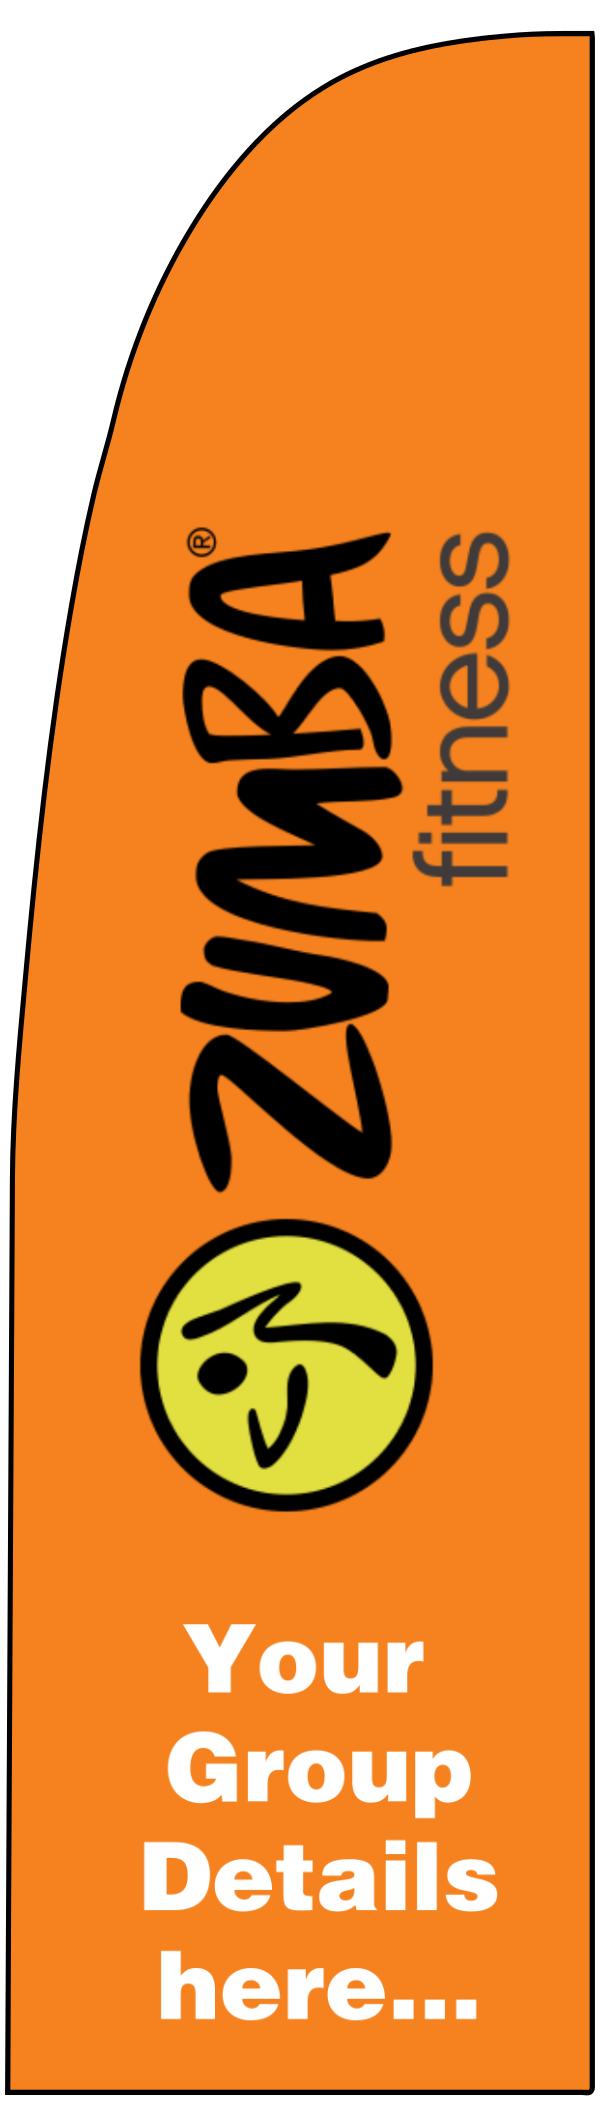 zumba_orange_flag - design template - 331